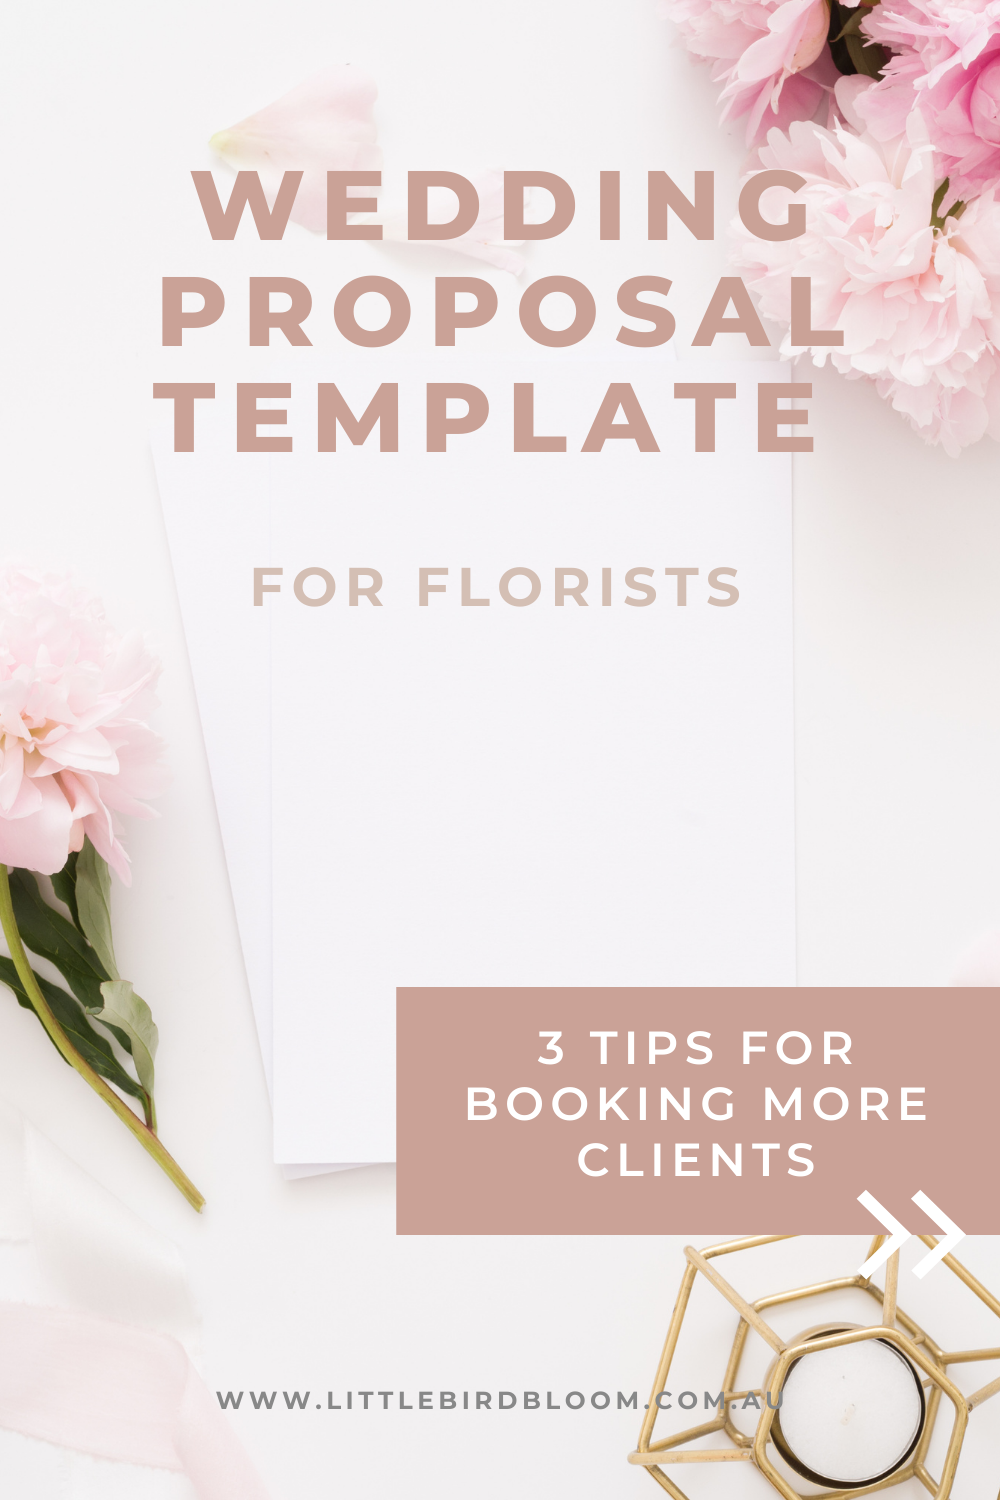 Wedding Proposal Template for Florists